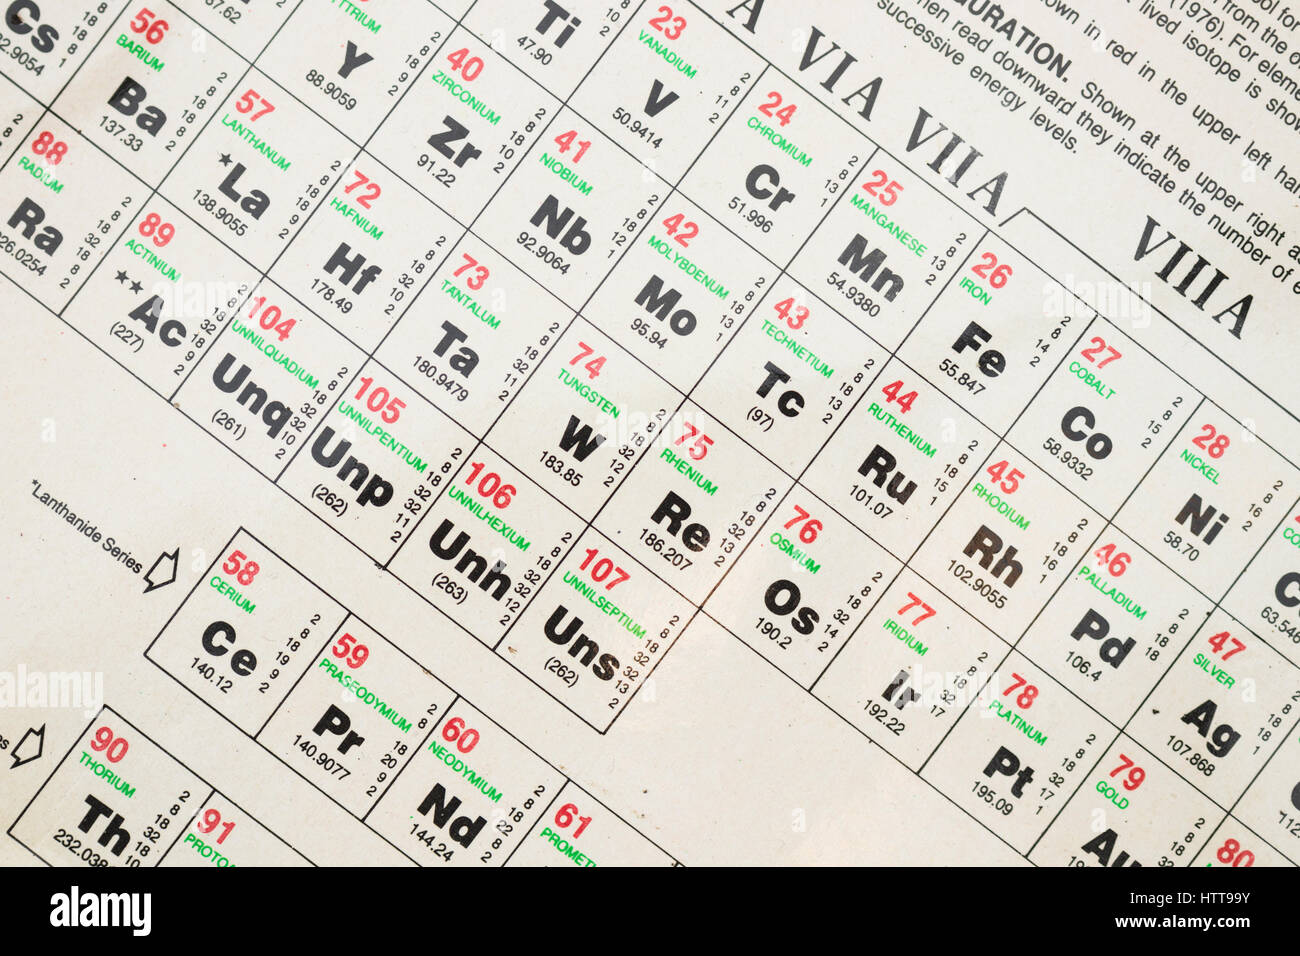 Detail of a periodic table of elements showing the symbol atomic detail of a periodic table of elements showing the symbol atomic weight atomic mass and electron configuration of each element urtaz Choice Image